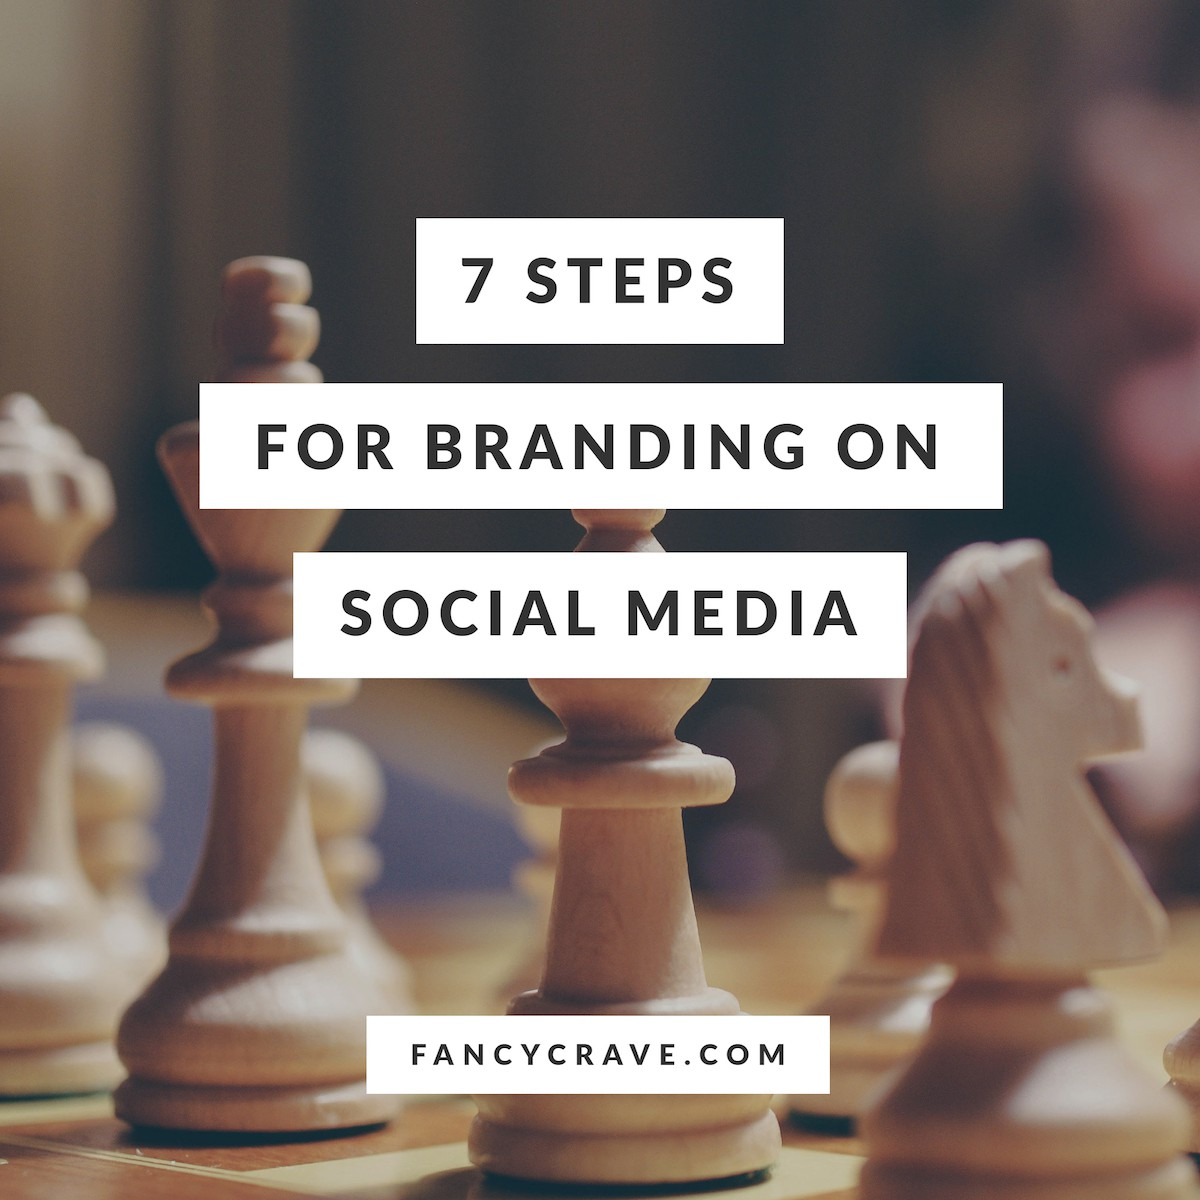 Want potential customers to see you online? Try these easy strategies for social media branding and get ready to boost your presence on the Web.